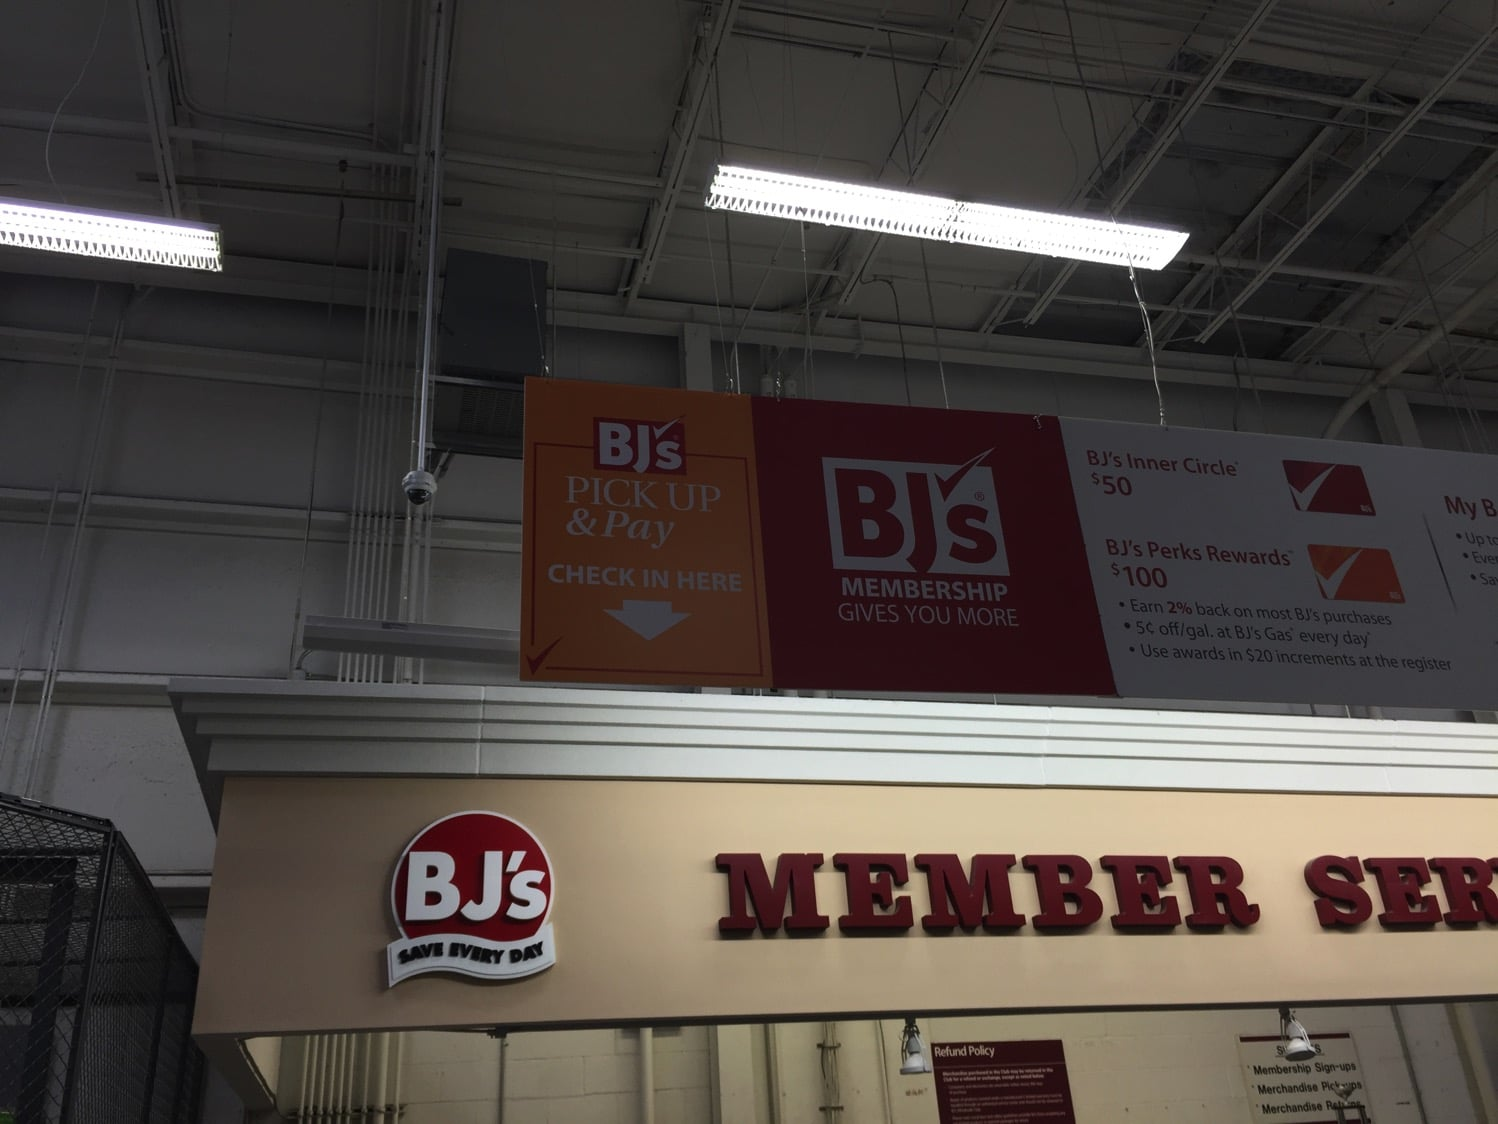 BJ's pick and pay